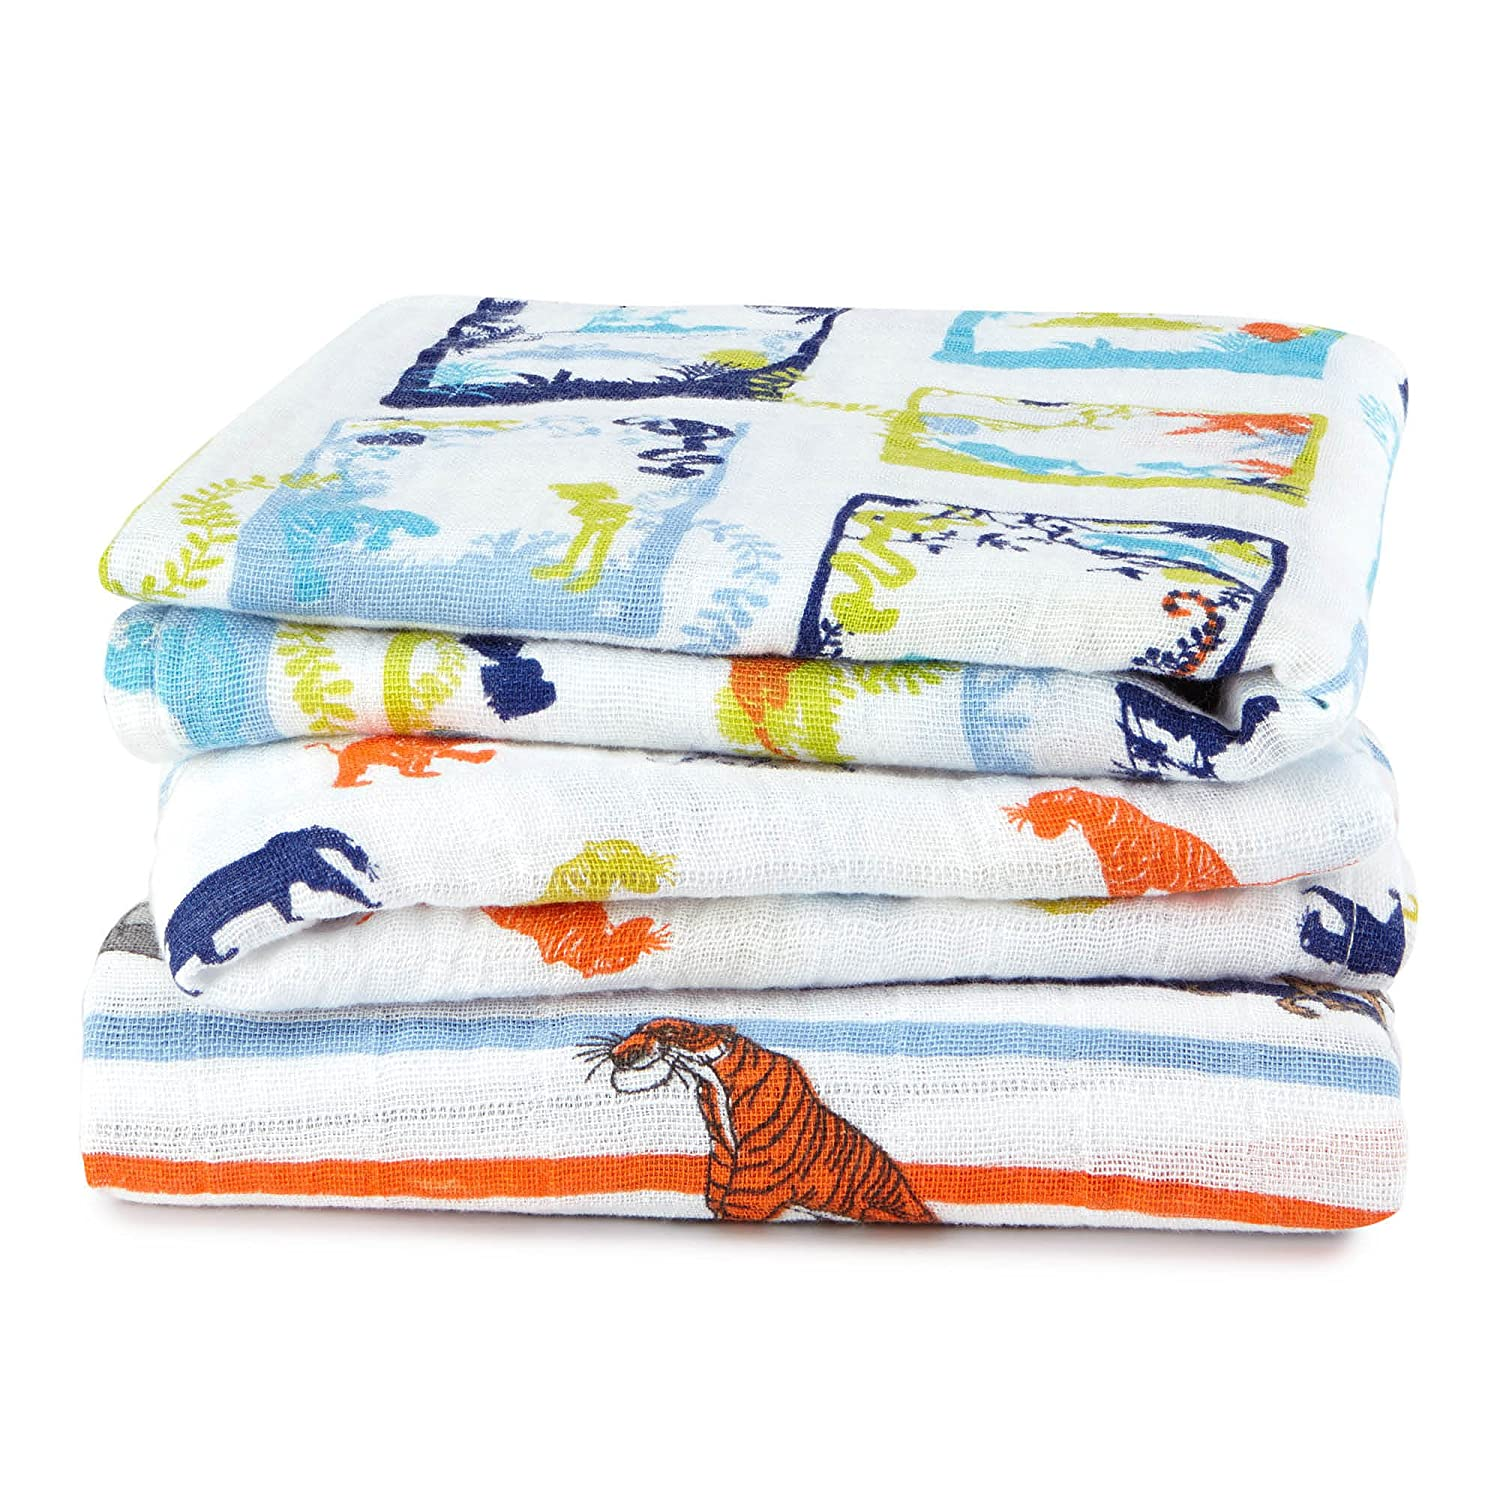 aden + anais –  disn201g Classic Musy Jungle Book, 3 Pack 3Pack